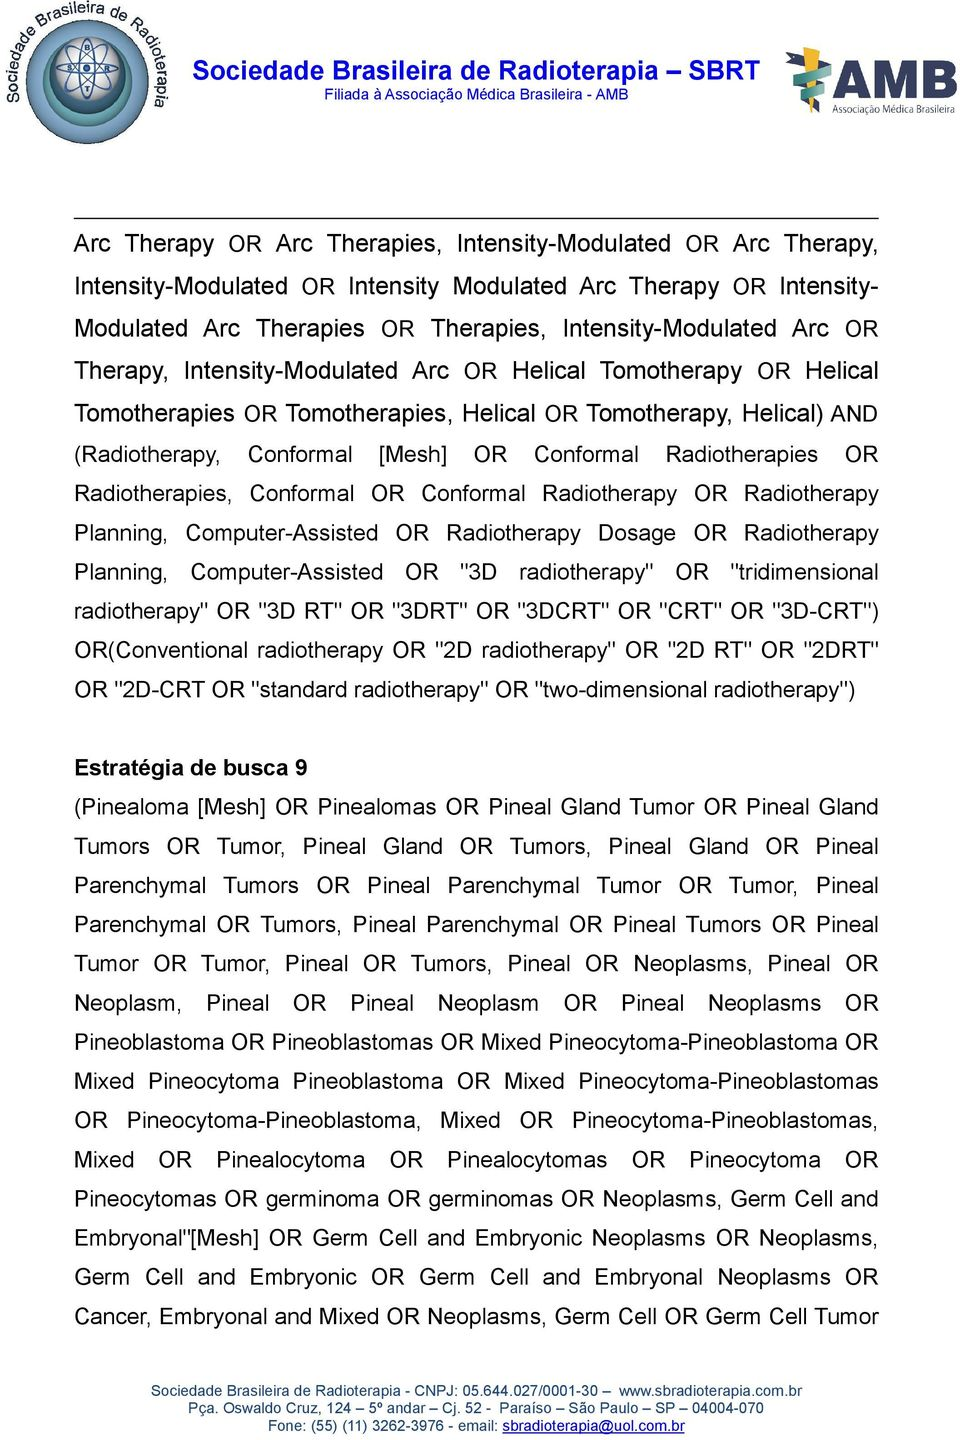 "Radiotherapies, Conformal OR Conformal Radiotherapy OR Radiotherapy Planning, Computer-Assisted OR Radiotherapy Dosage OR Radiotherapy Planning, Computer-Assisted OR ""3D radiotherapy"" OR"